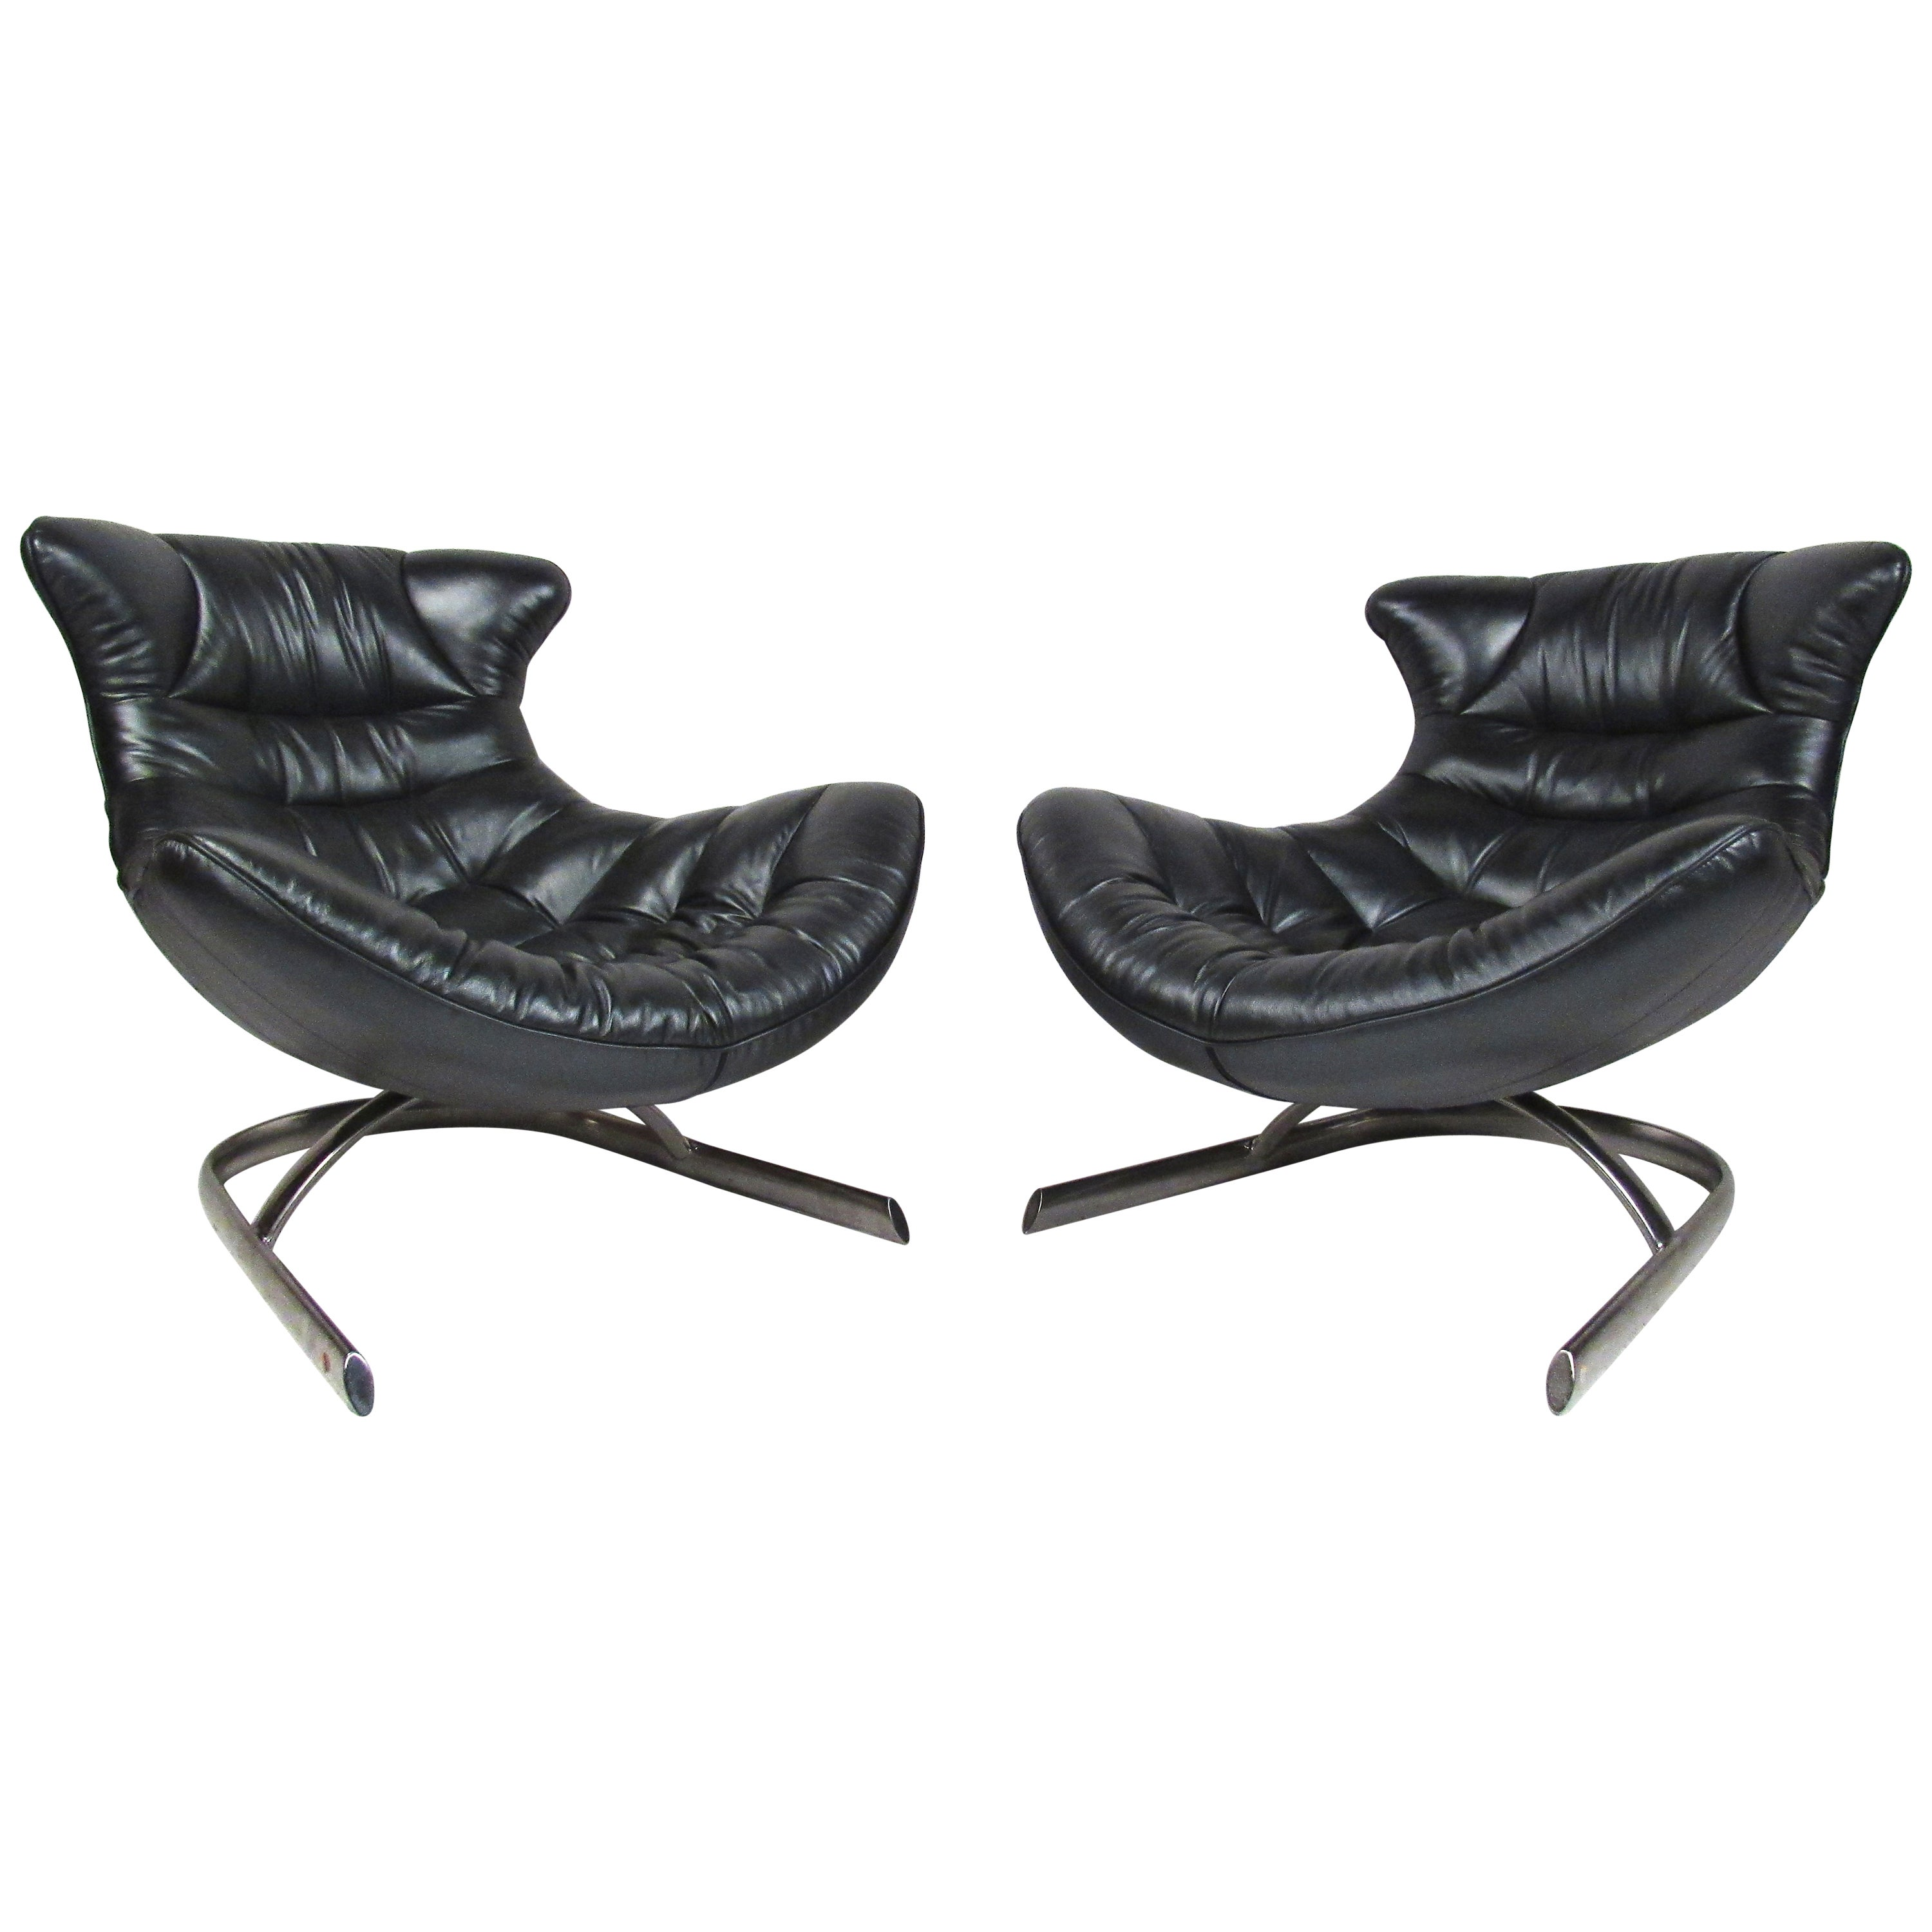 Pair of Modern Style Low Slung Leather Lounge Chairs